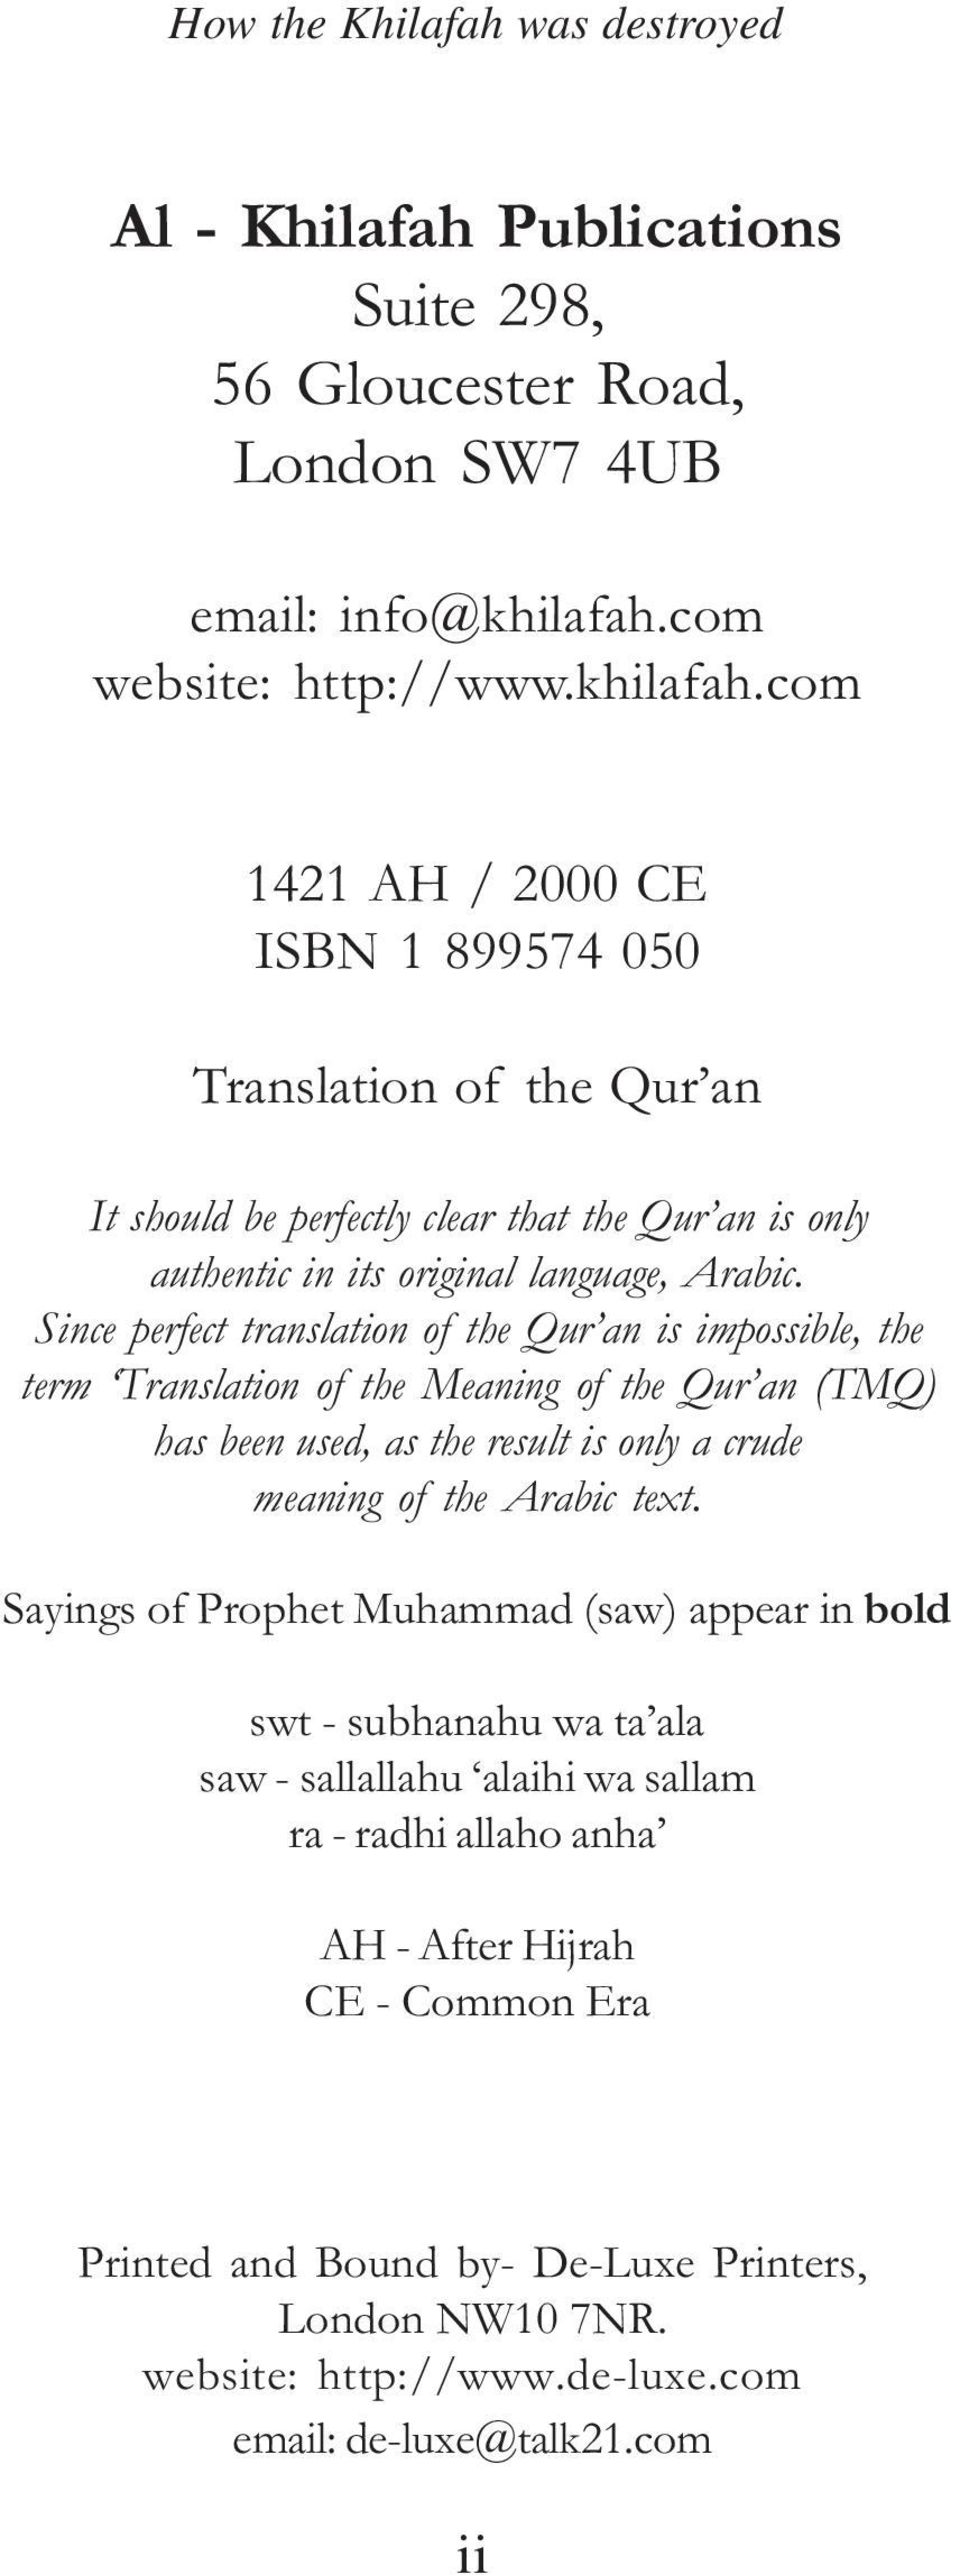 Since perfect translation of the Qur an is impossible, the term Translation of the Meaning of the Qur an (TMQ) has been used, as the result is only a crude meaning of the Arabic text.